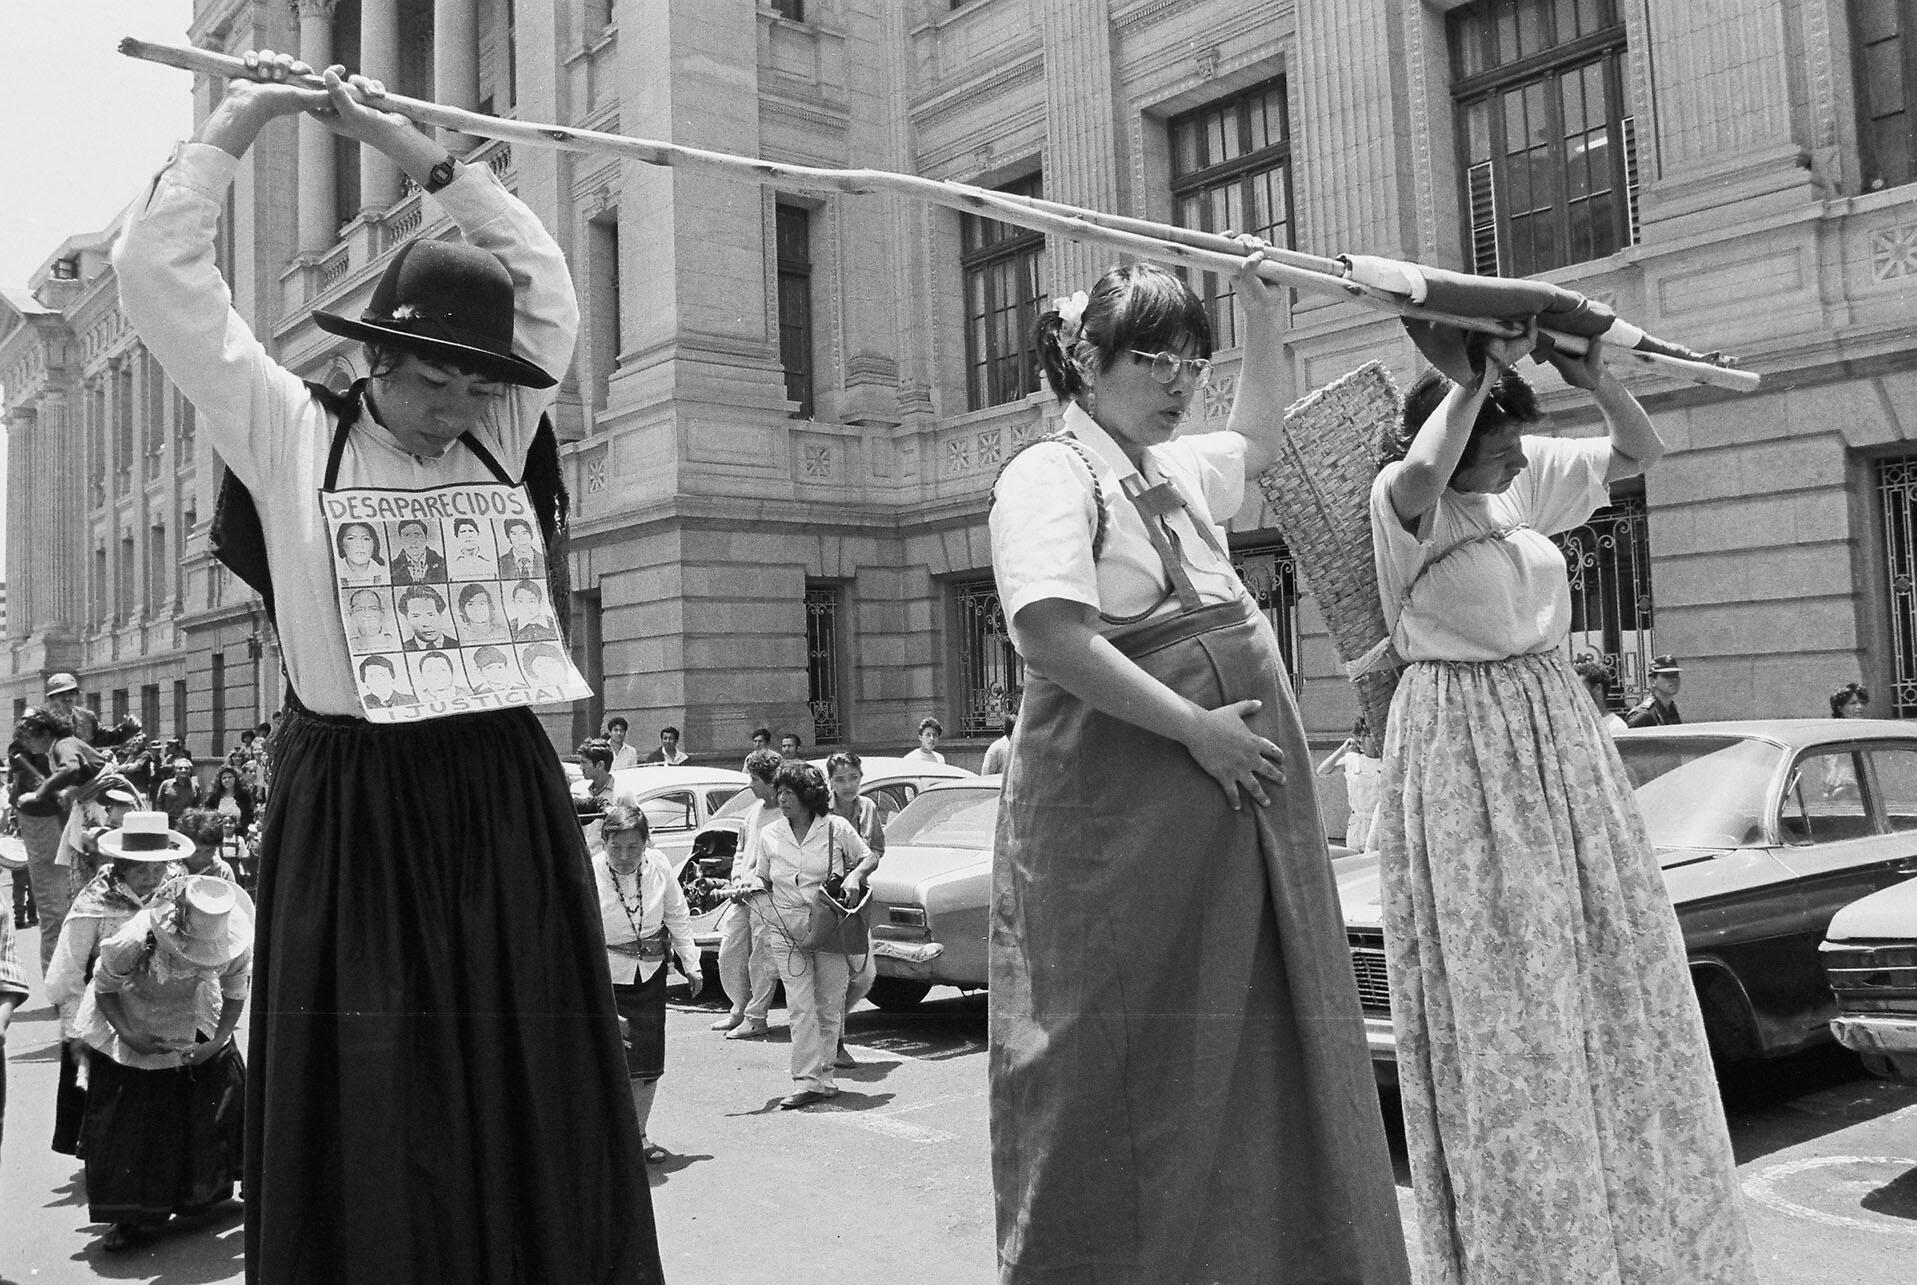 Women protesting disappearances and sexual violence by the military in Peru, 1988. (Photo by Silvia Beatriz Suárez Moncada.)